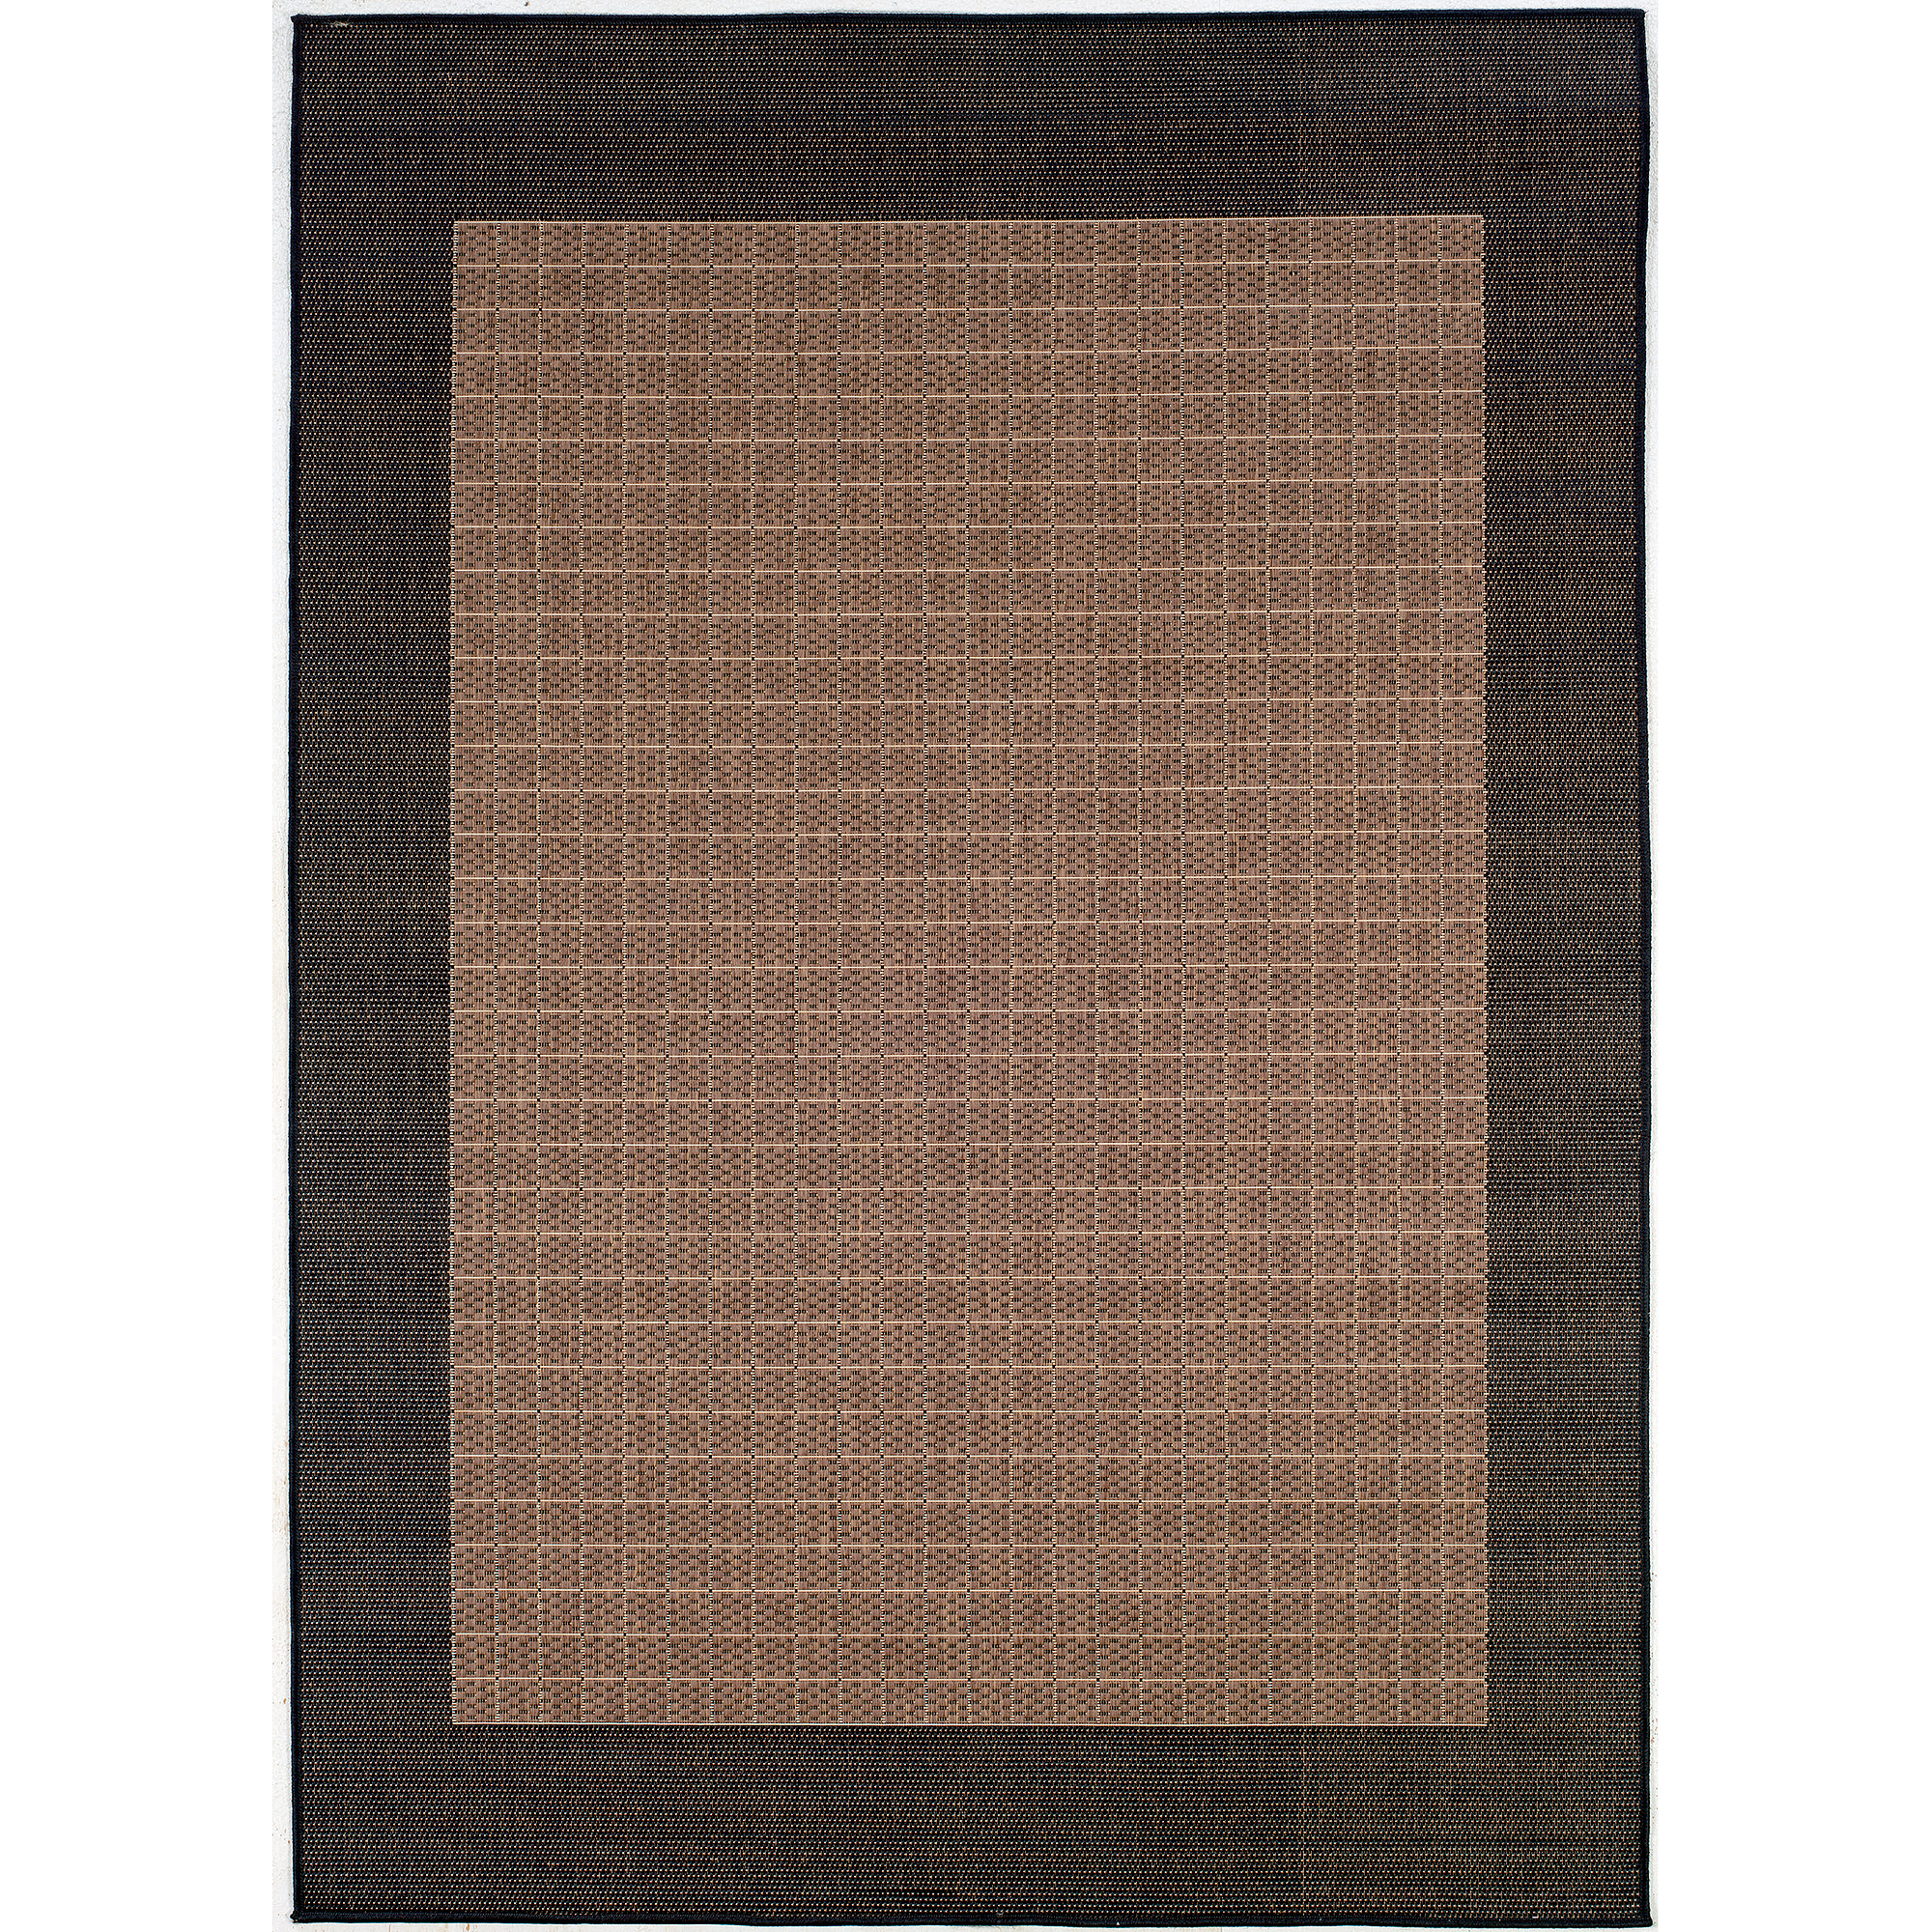 Couristan Recife Checkered Field Rug, Cocoa/Black